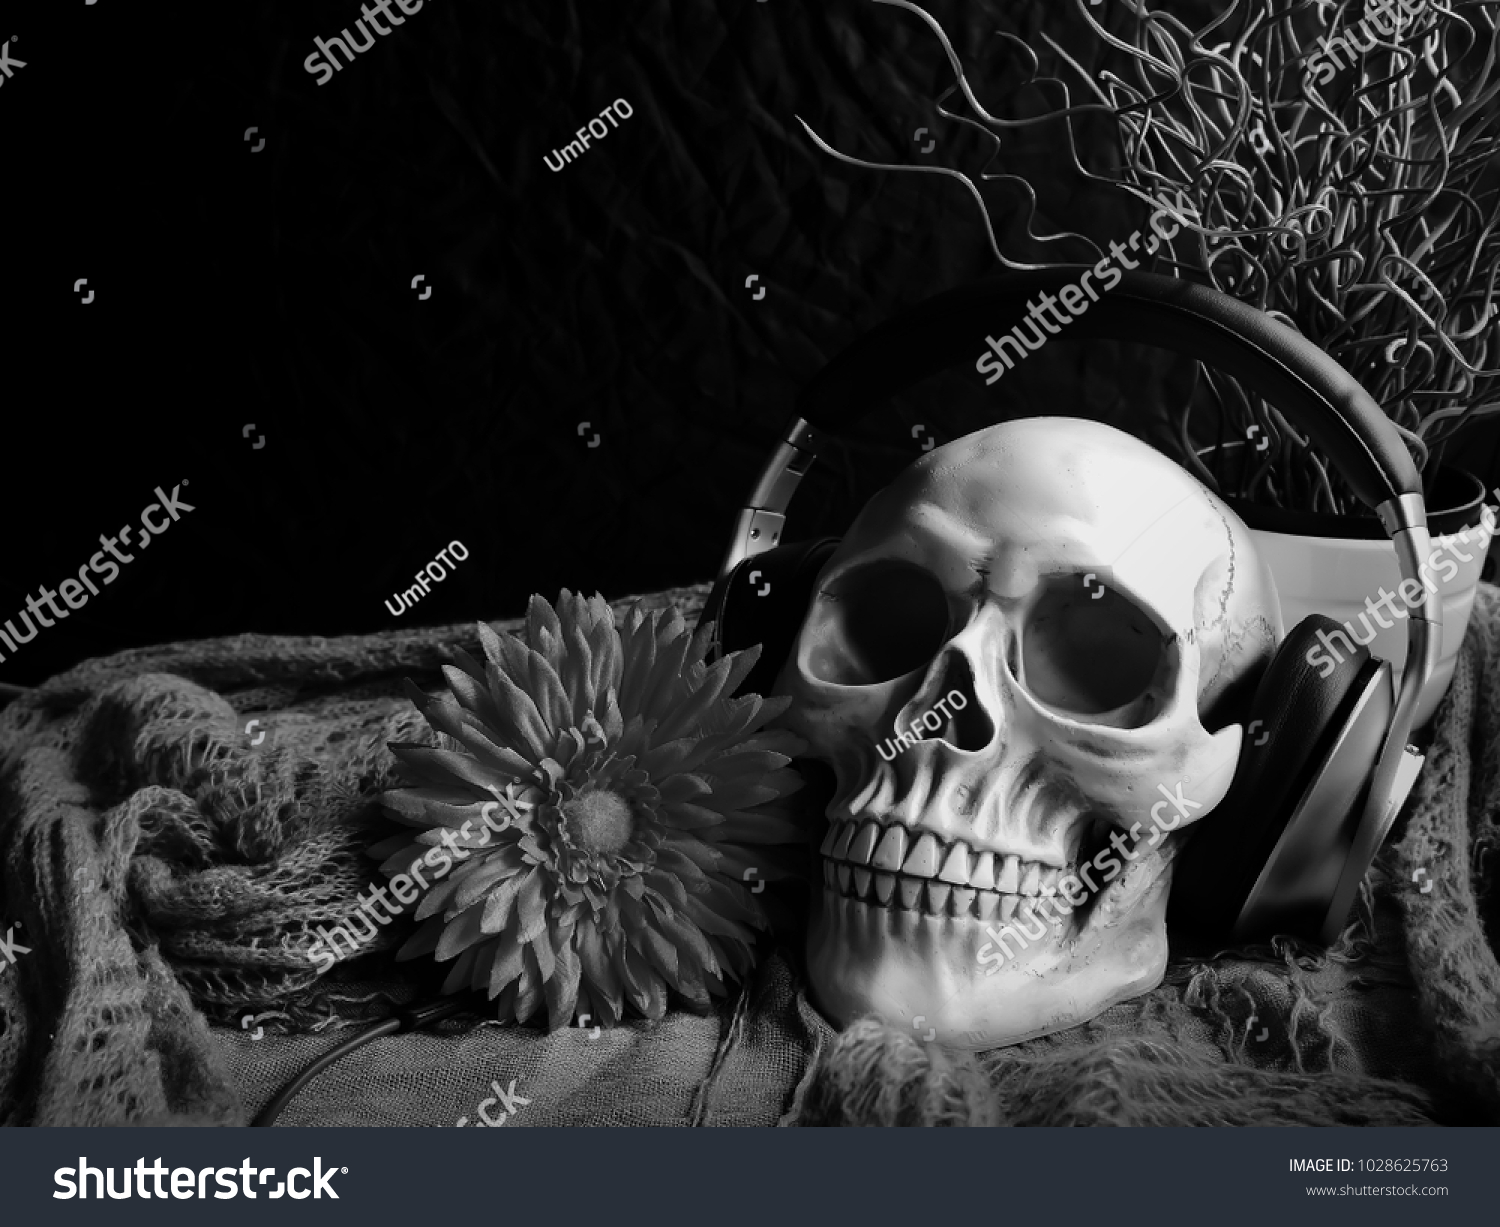 Close up photography black and white of skull life and headphones still life and